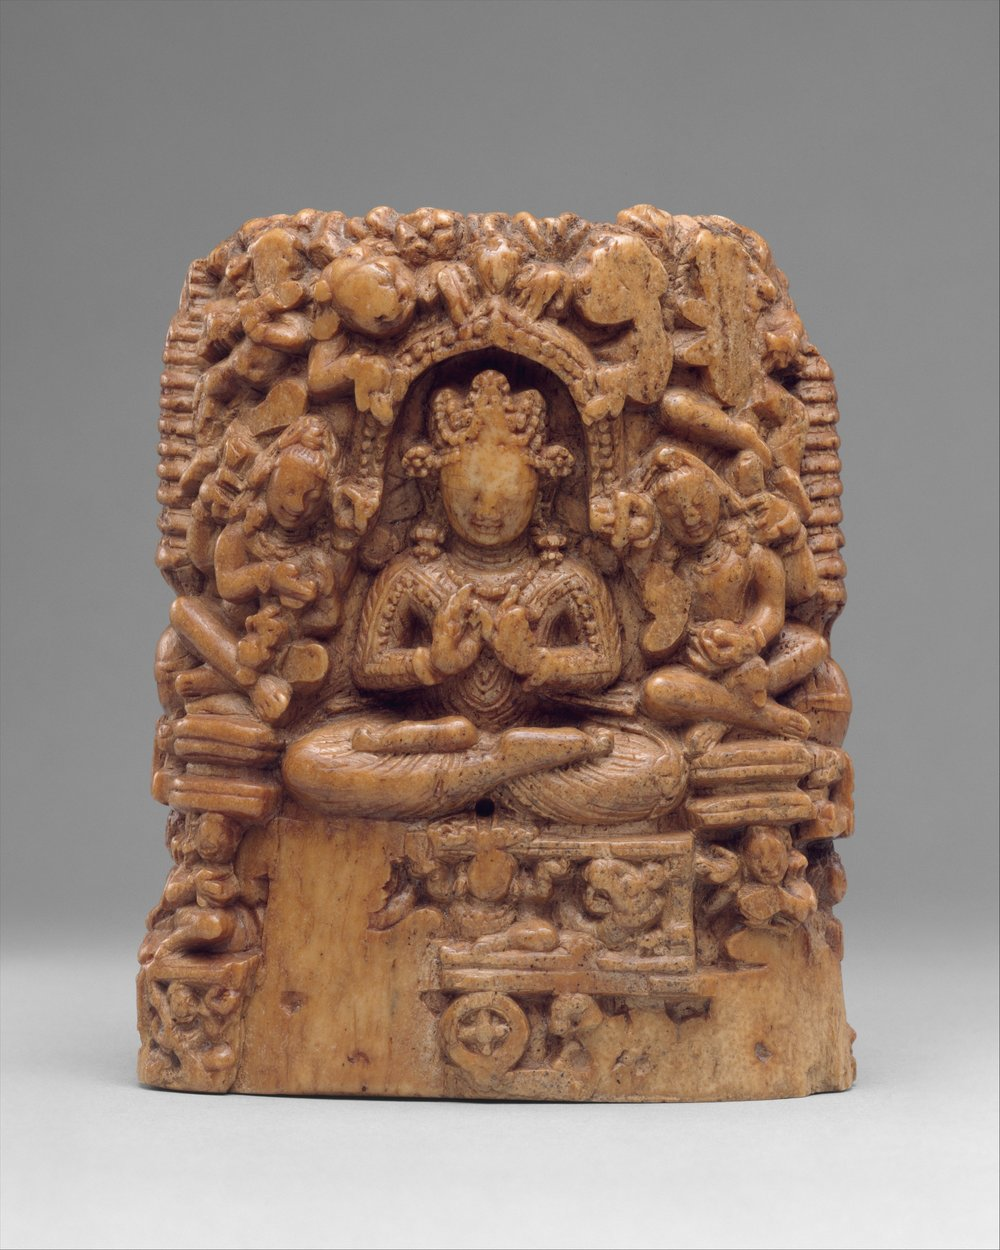 A Reliquary Showing scenes from Buddha's life from Kashmir